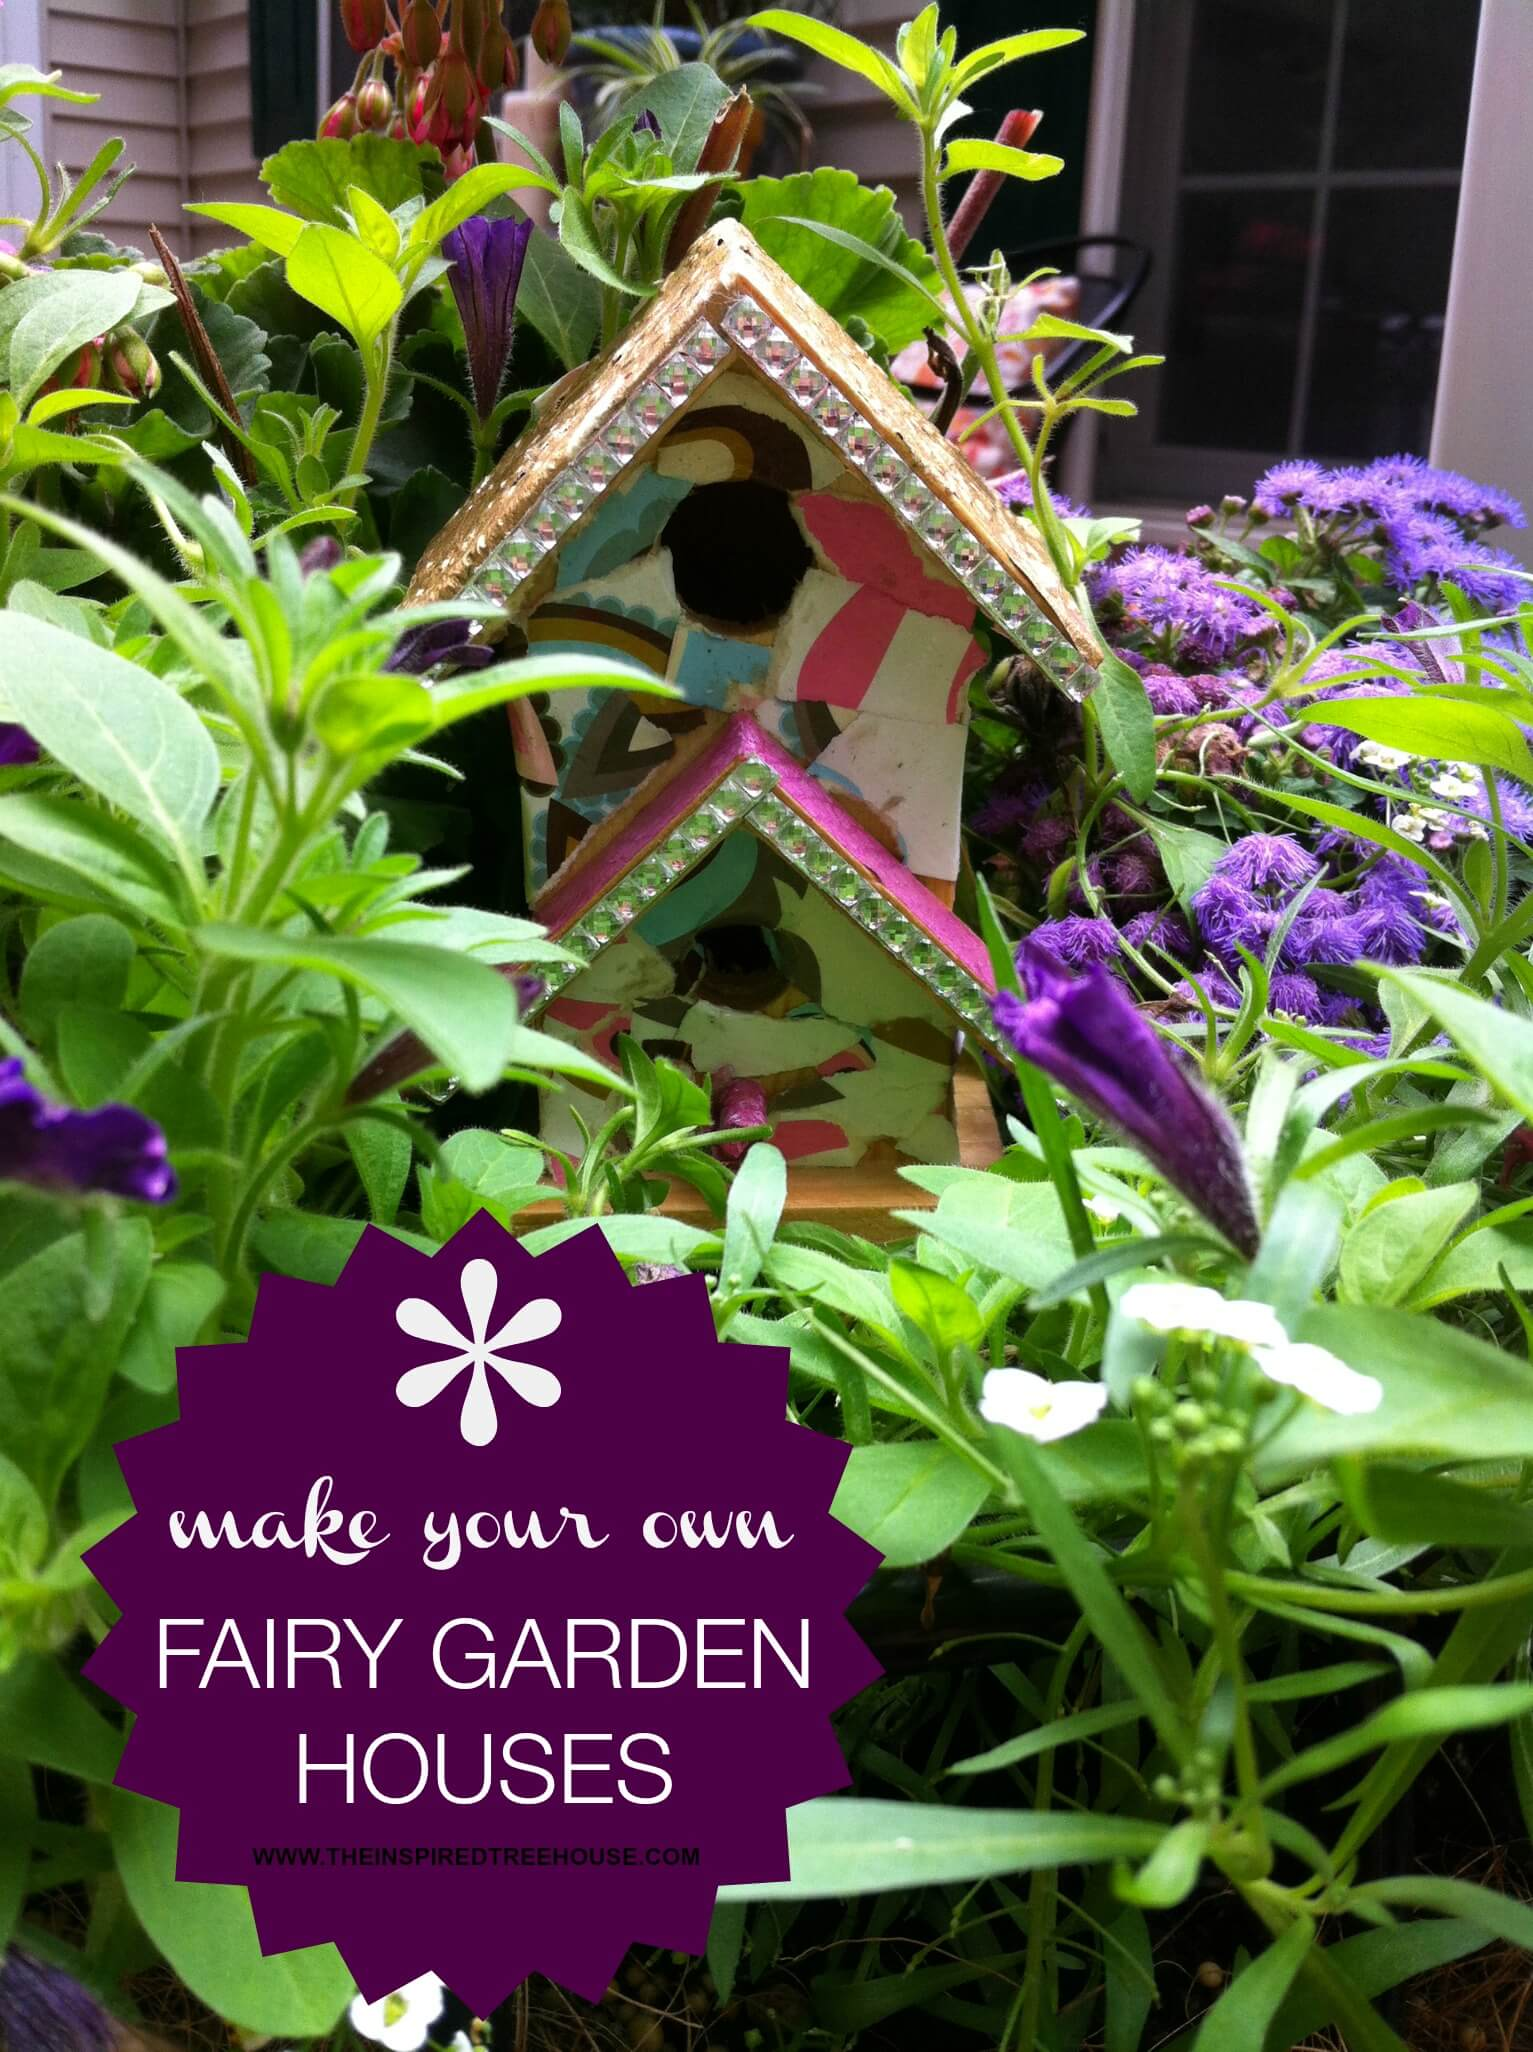 FAIRYGARDENCOLLAGE2